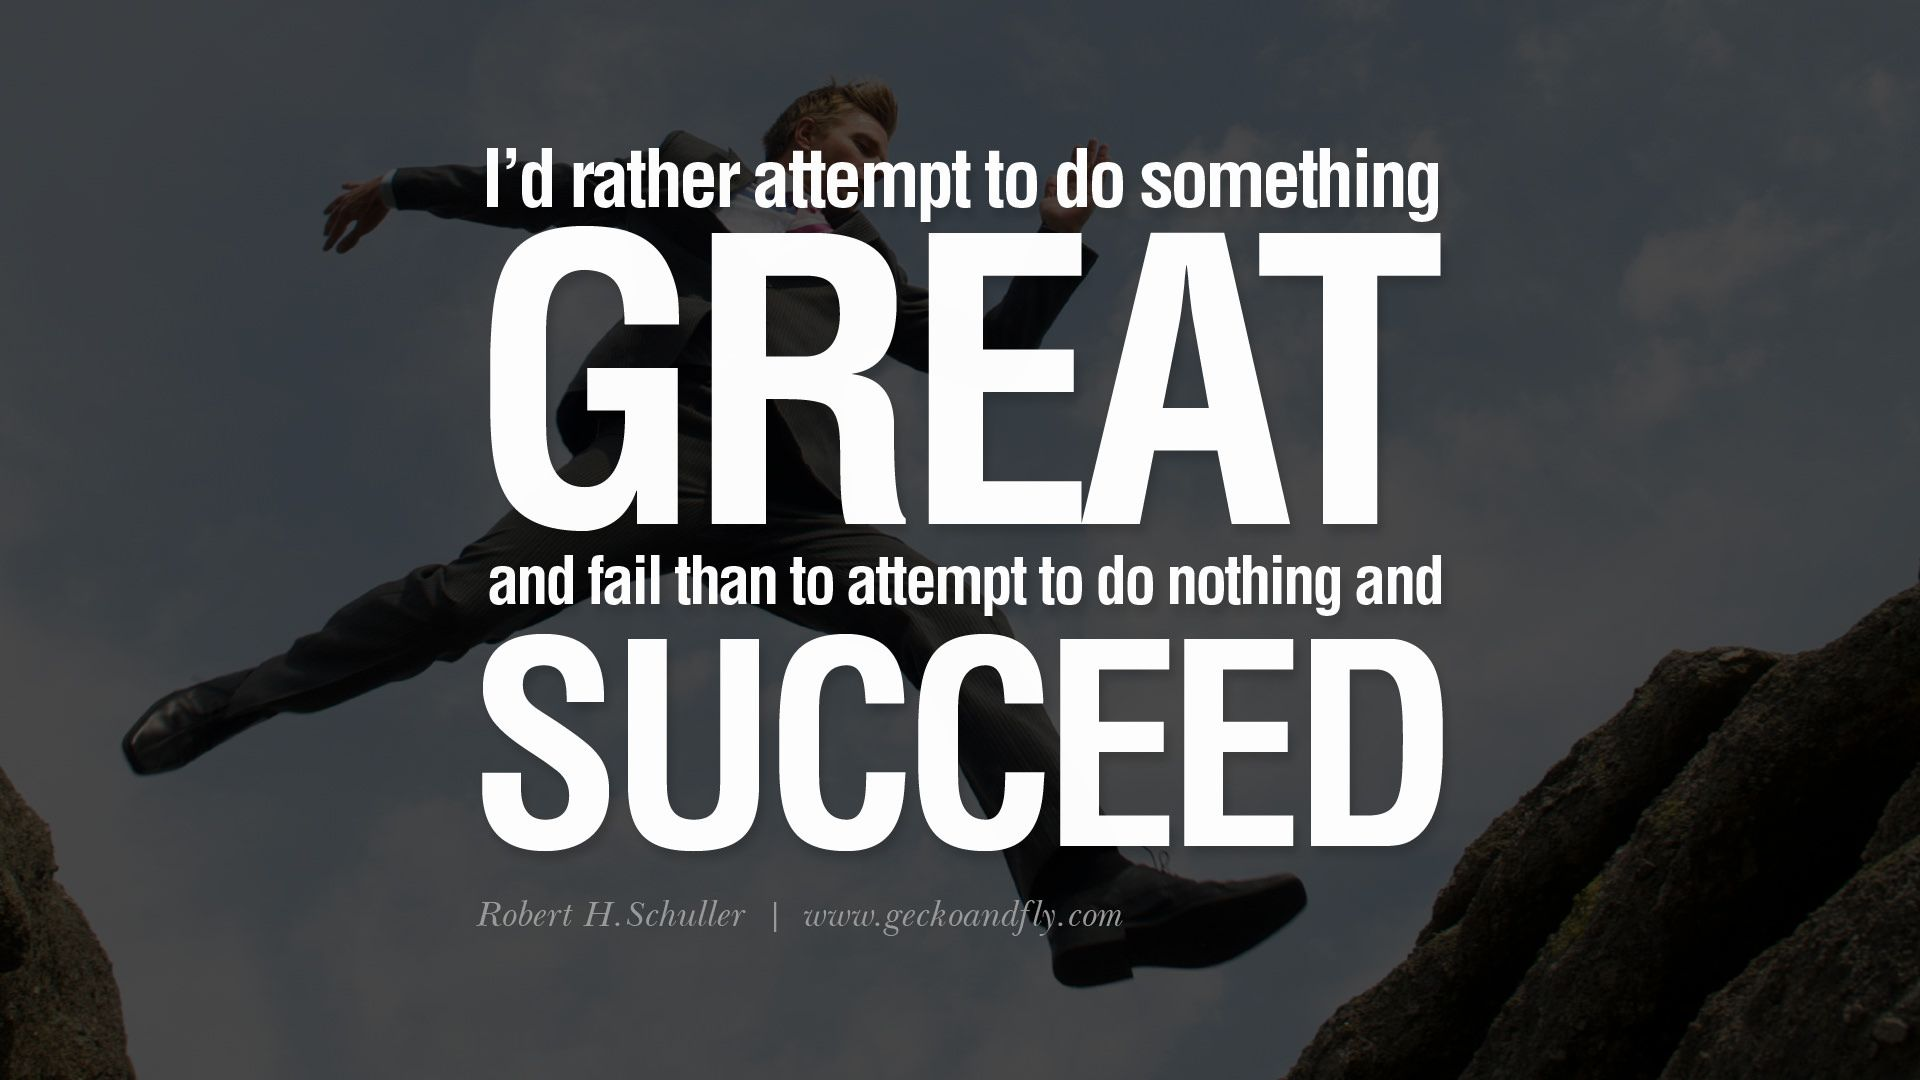 Motivational Sports Quotes Be Great And Do Whatever You Can To Succeed  Motivational Quotes